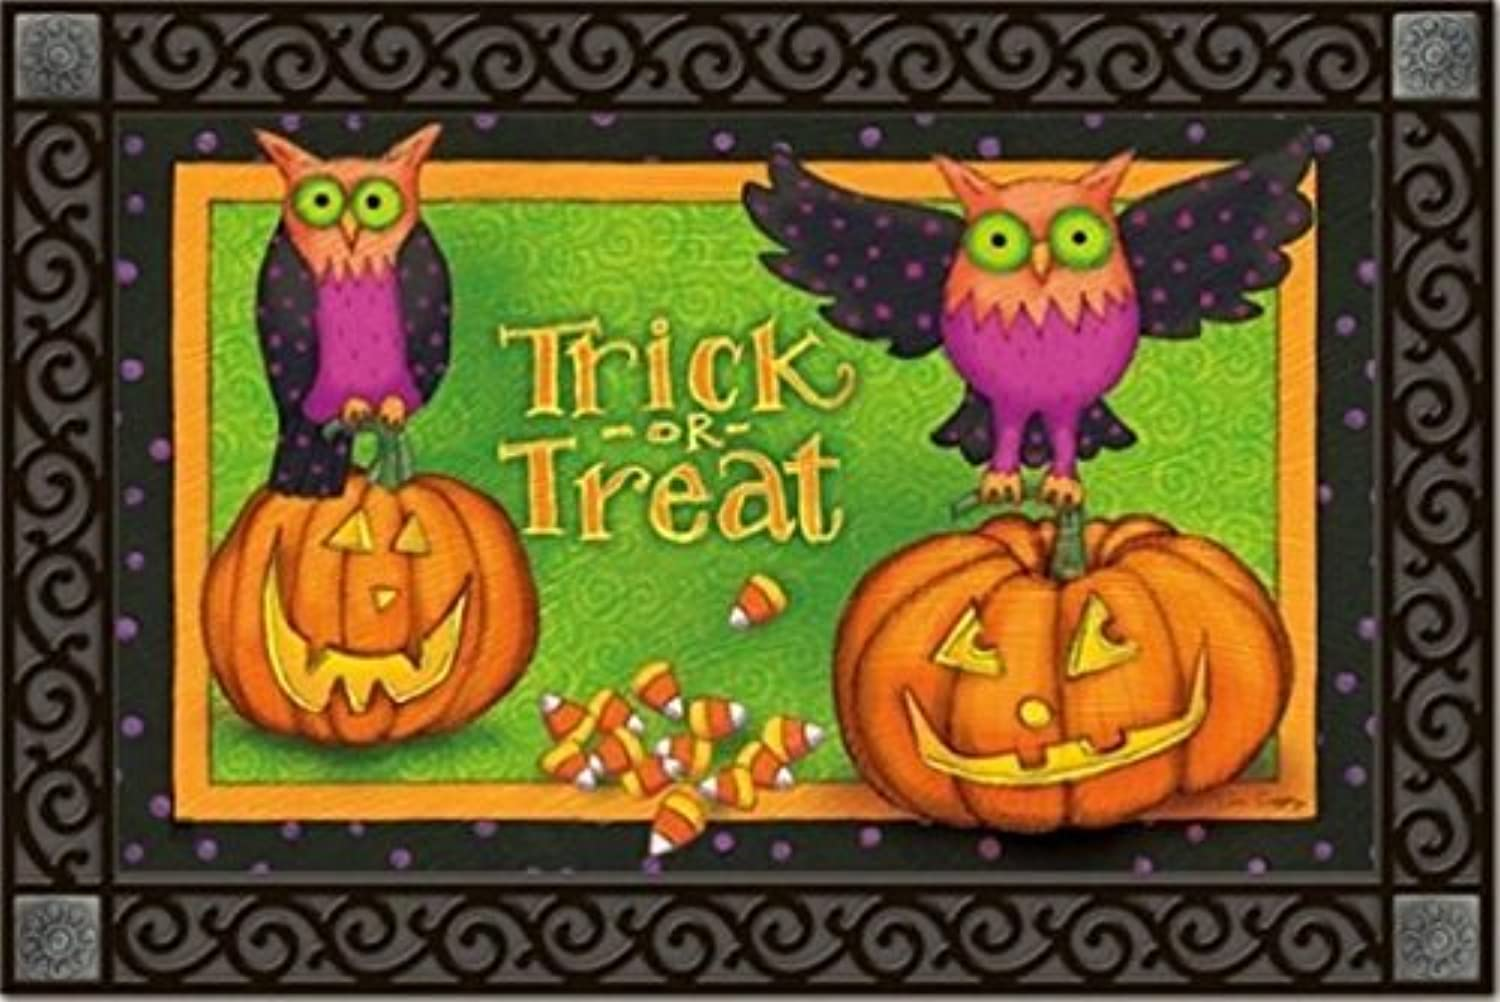 Trick or Treat Owls Halloween Doormat Indoor   Outdoor by MatMates 18  x 30